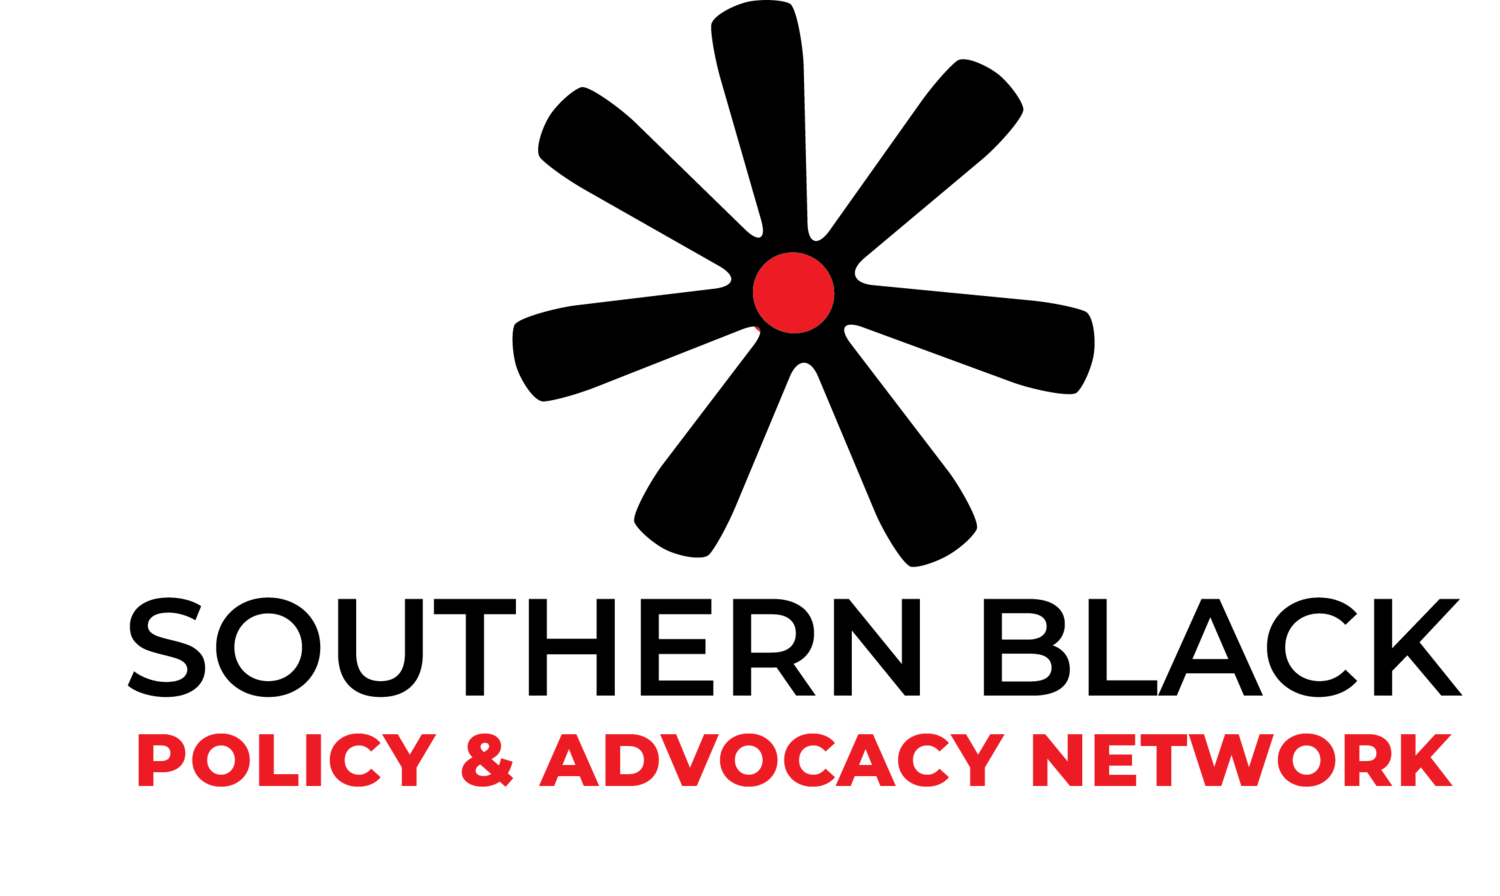 Southern Black Policy and Advocacy Network